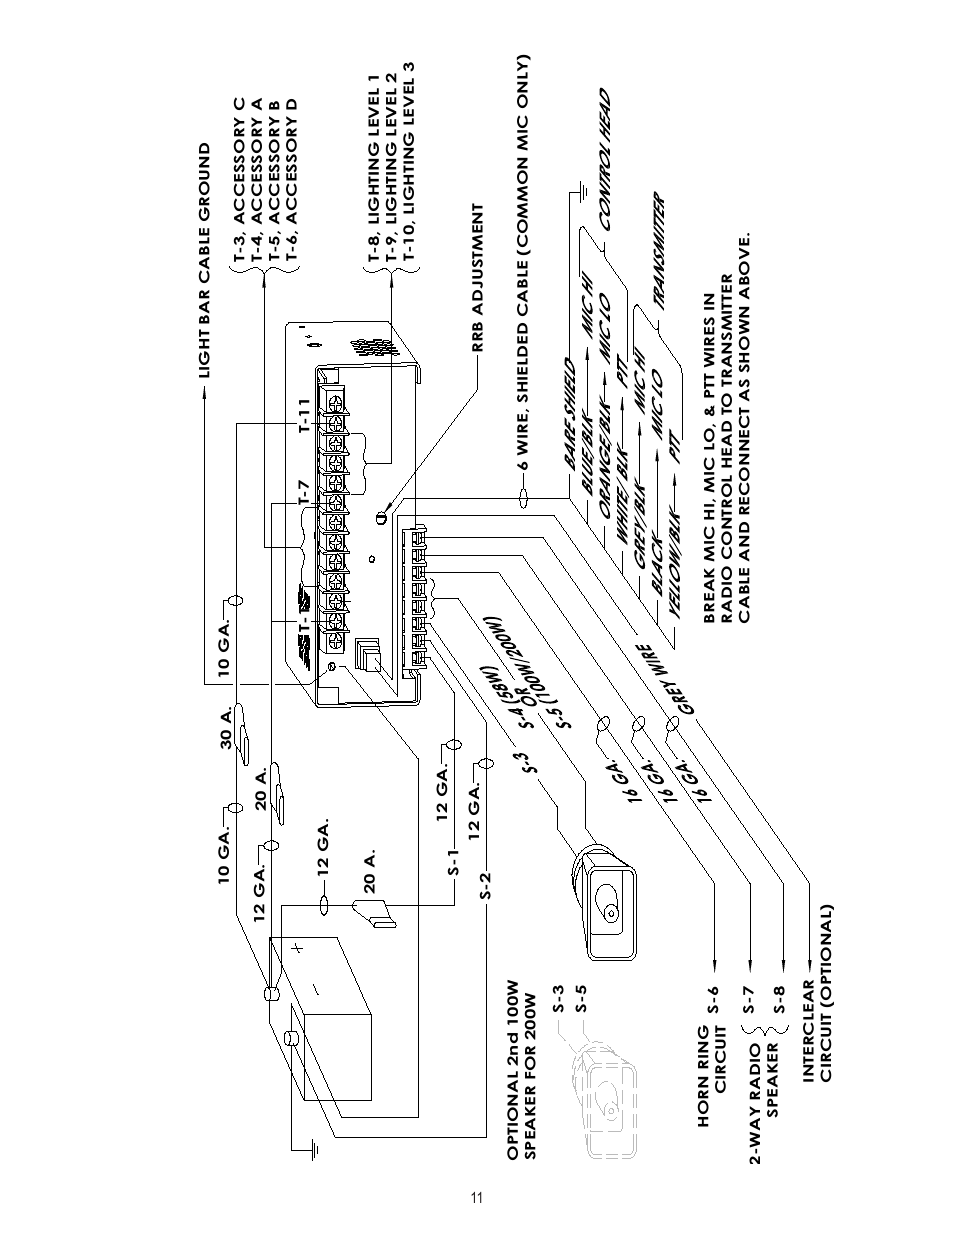 33 Code 3 Mx7000 Wiring Diagram